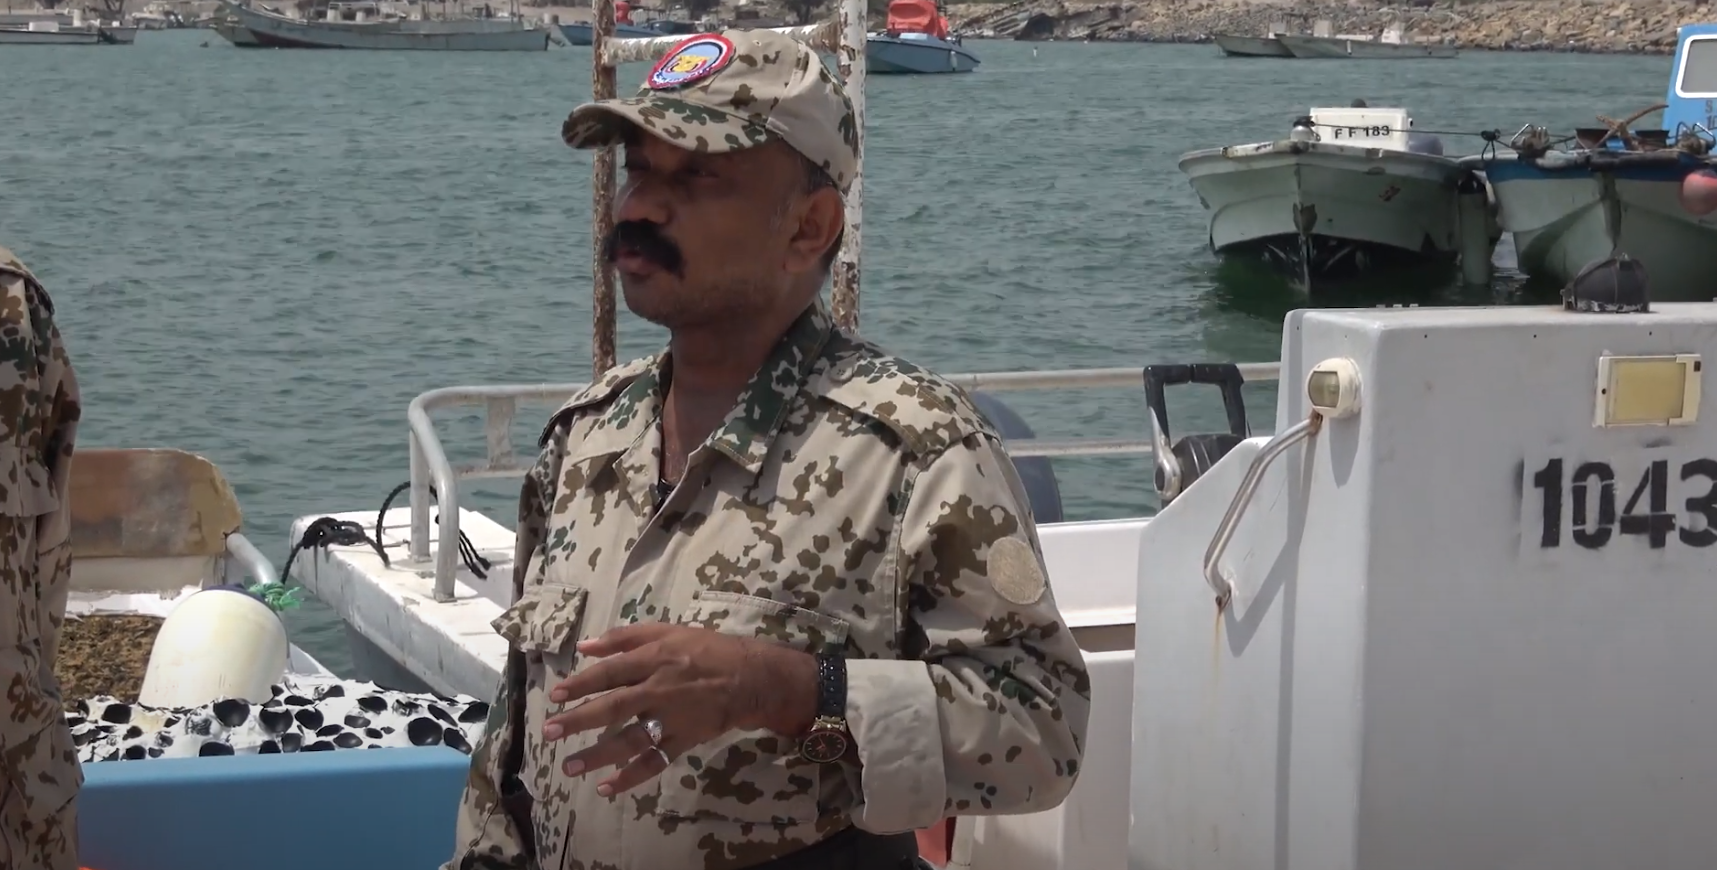 Coast Guard personnel in the National Resistance Colonel Abdullah Fachri